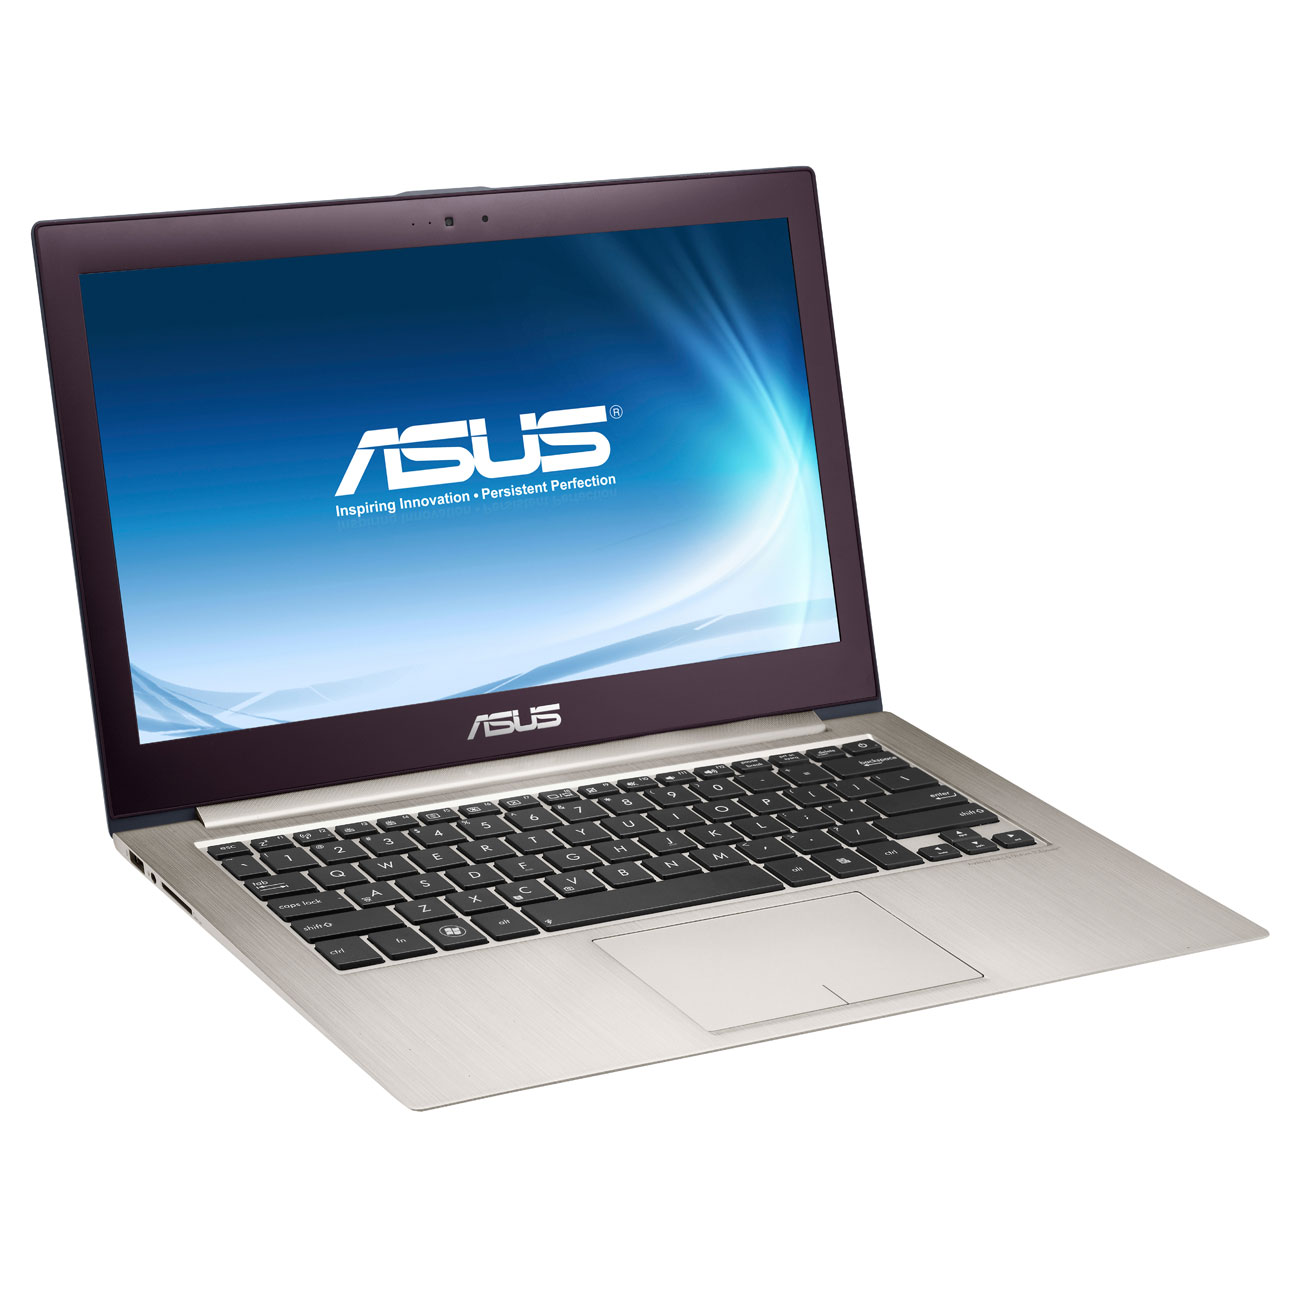 "PC portable ASUS ZenBook Prime UX31A-R4035P Intel Core i7-3537U 4 Go SSD 256 Go 13.3"" LED Wi-Fi N/Bluetooth Webcam Windows 8 Pro 64 bits (garantie constructeur 2 ans)"